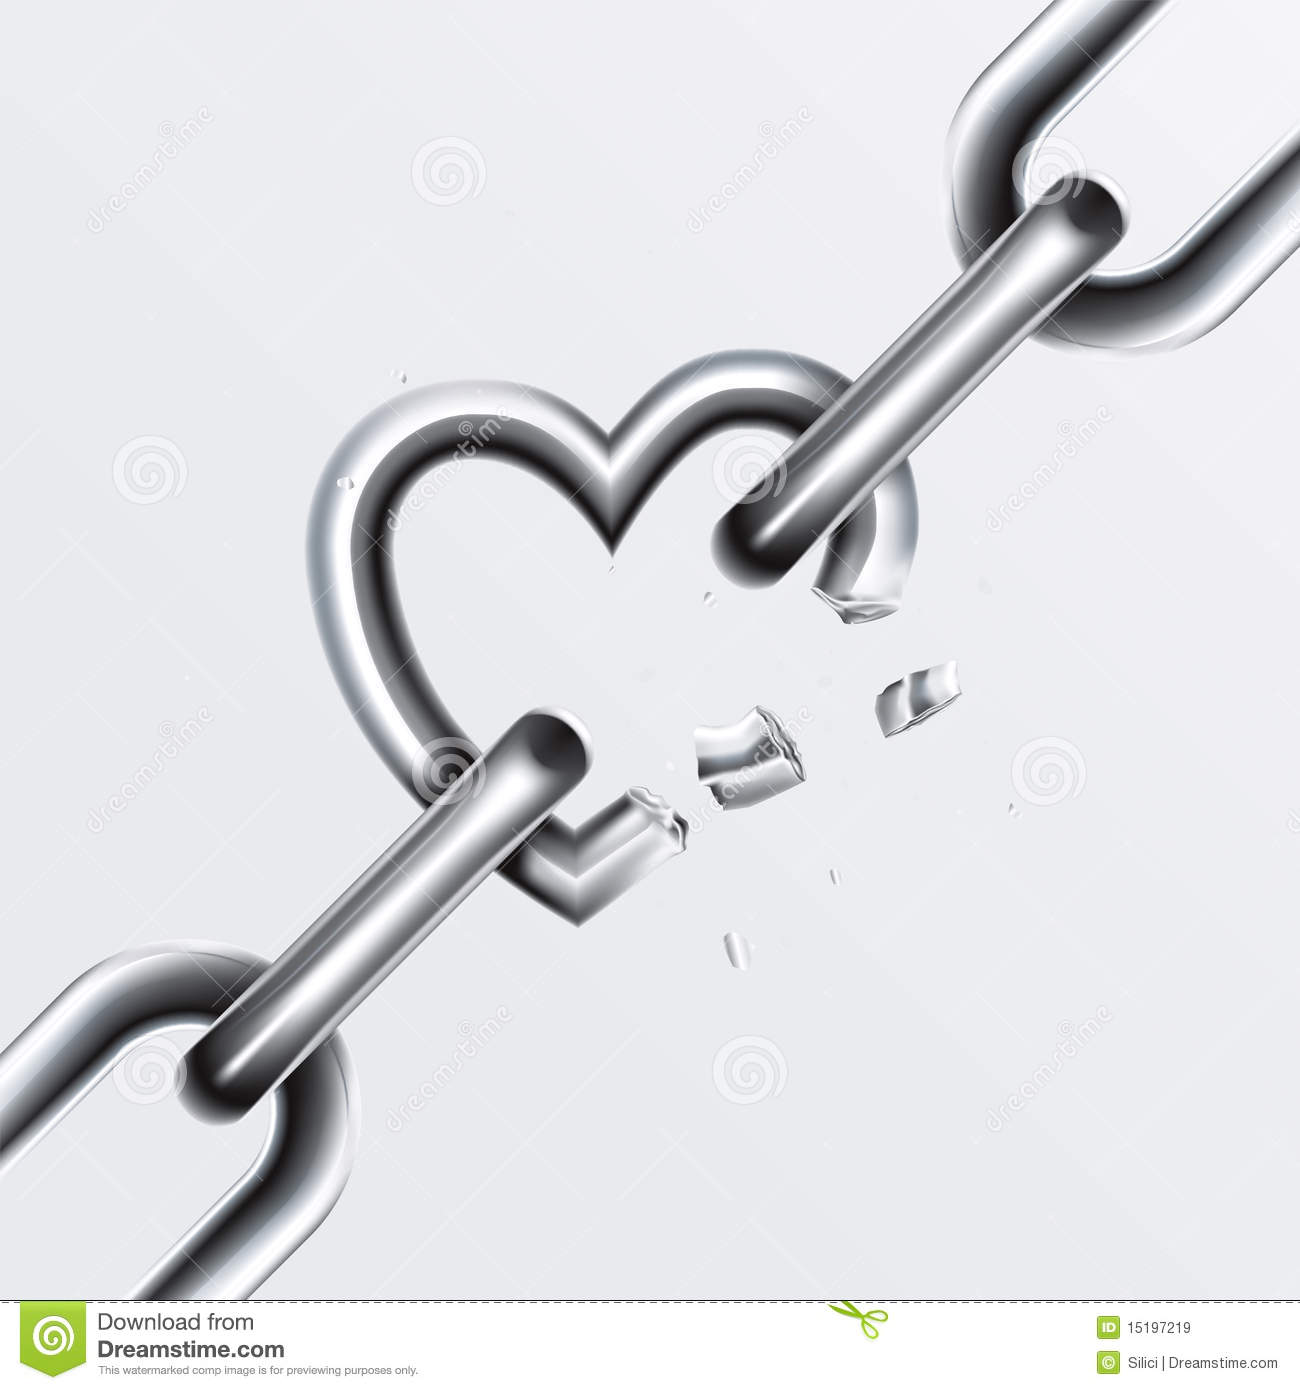 Broken Chain Stock Photos, Images, & Pictures - 2,557 Images